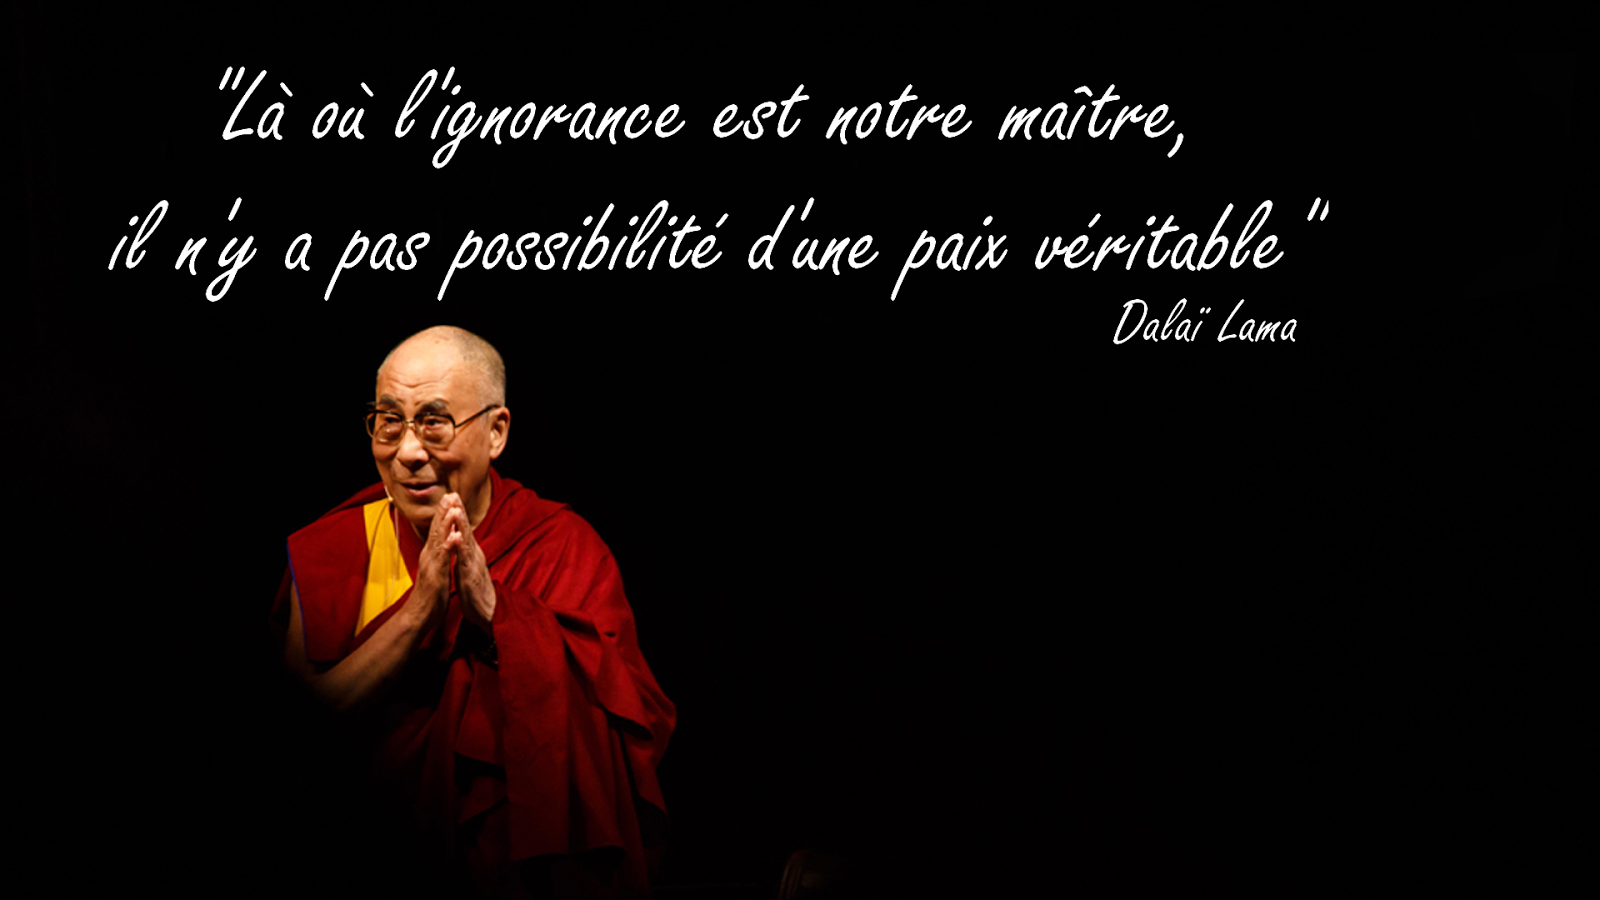 Citaten Dalai Lama : Ensembles des meilleures citations et paroles du dalaï